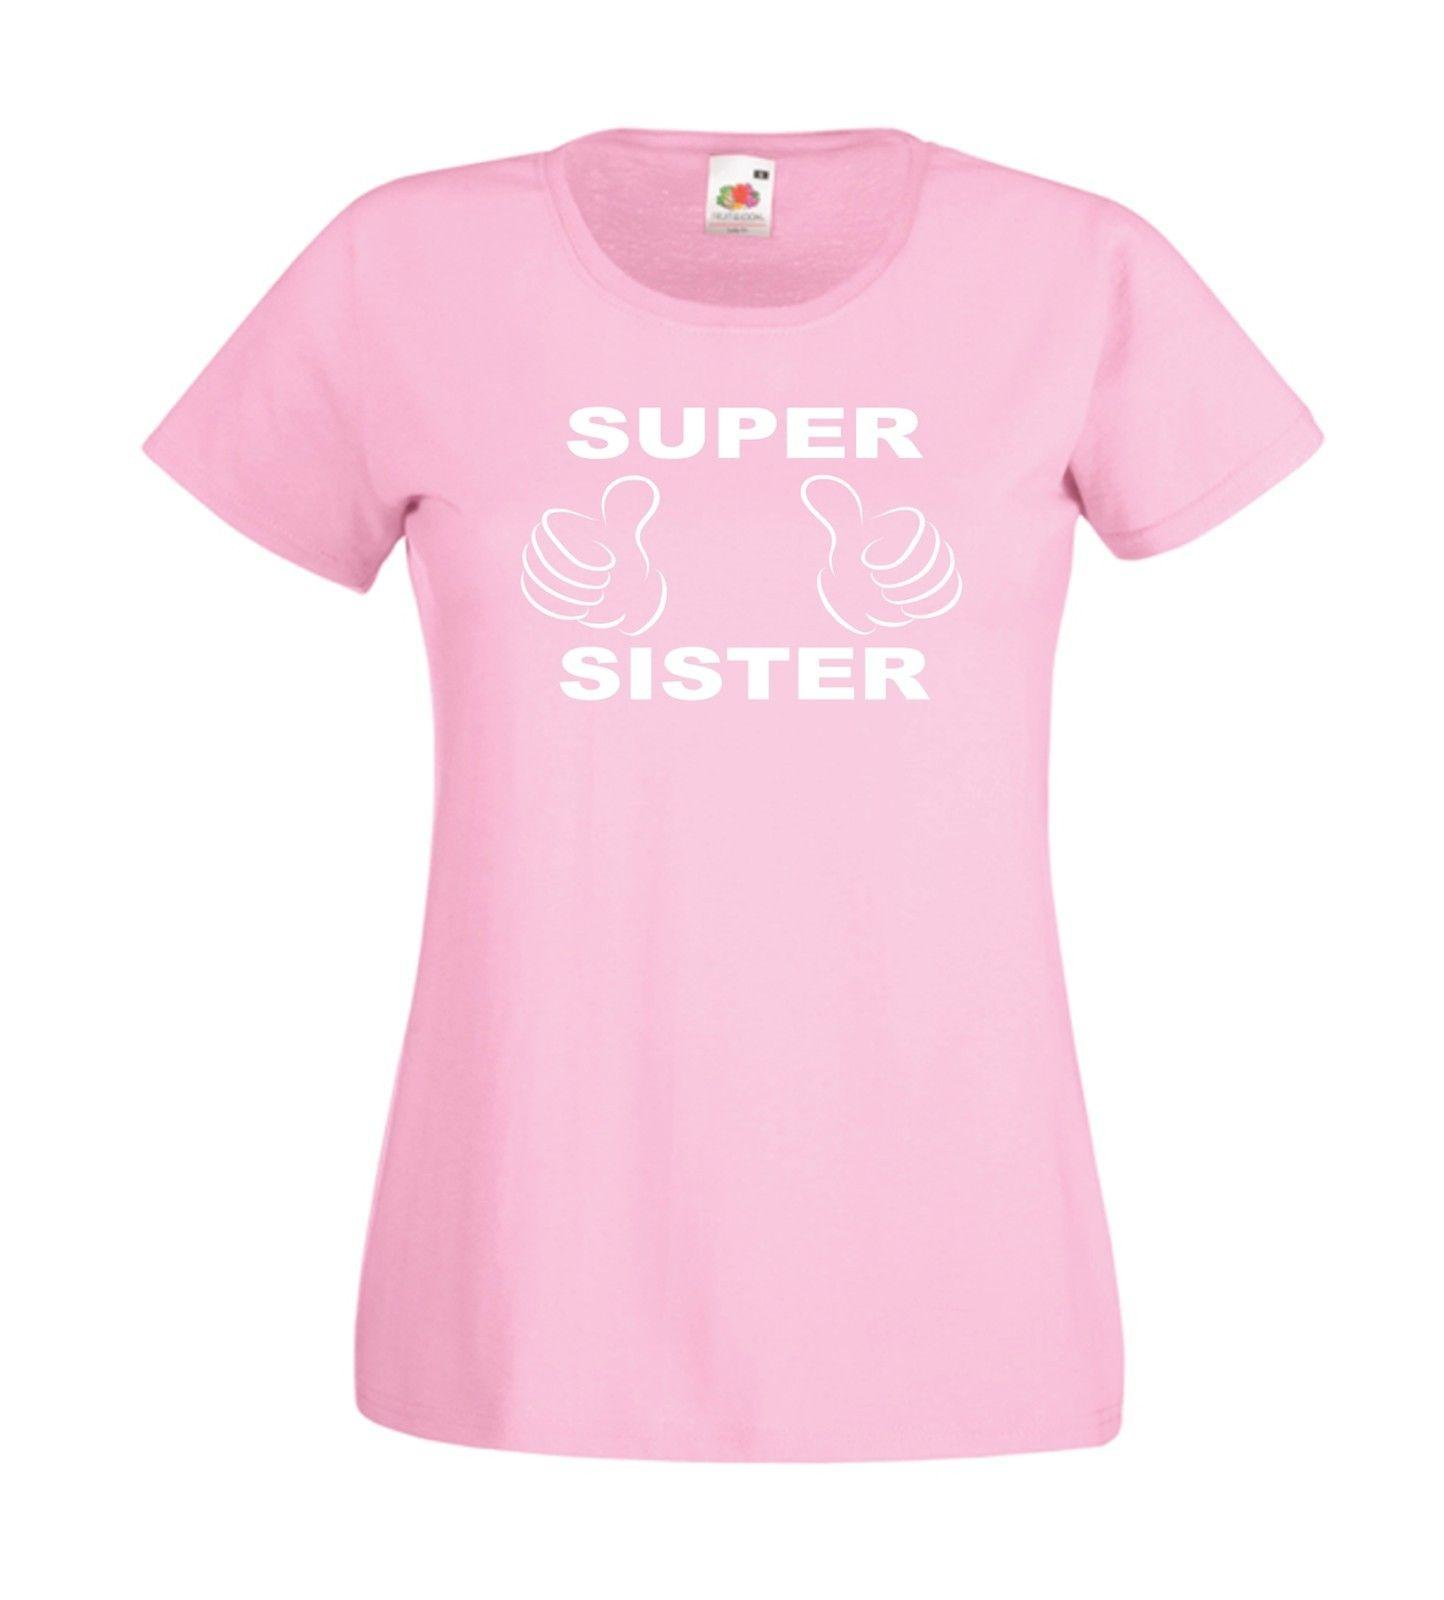 SUPER SISTER Mothers Aunts Top Xmas Birthday Gift Idea Mens Womens ADULT T SHIRT Funny Unisex Casual Tee Gag Shirts With Prints From